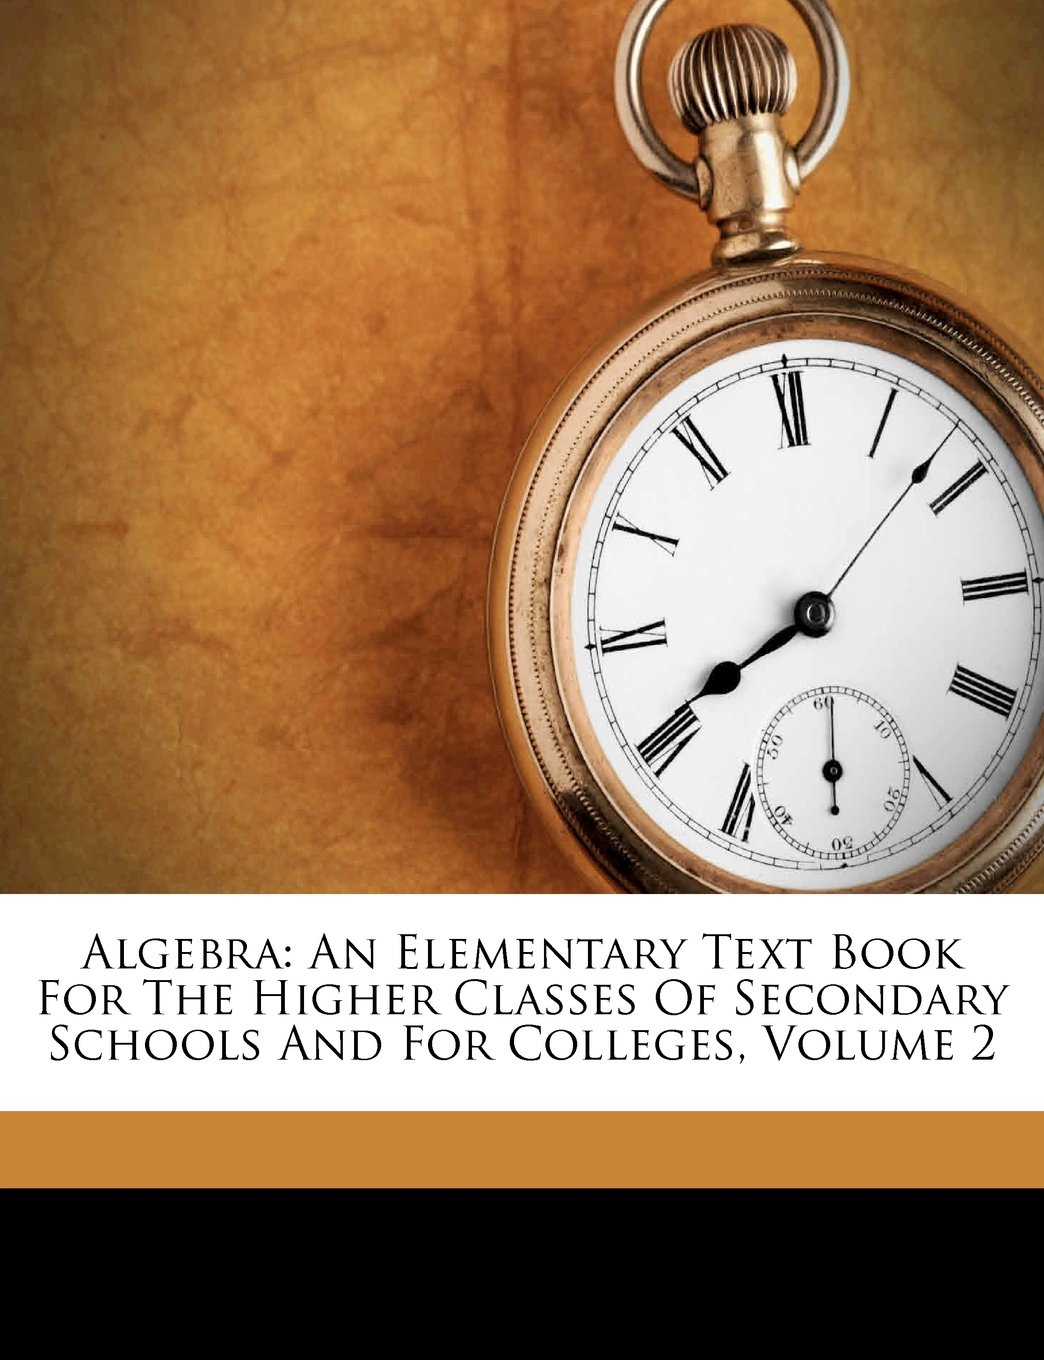 Download Algebra: An Elementary Text Book For The Higher Classes Of Secondary Schools And For Colleges, Volume 2 PDF